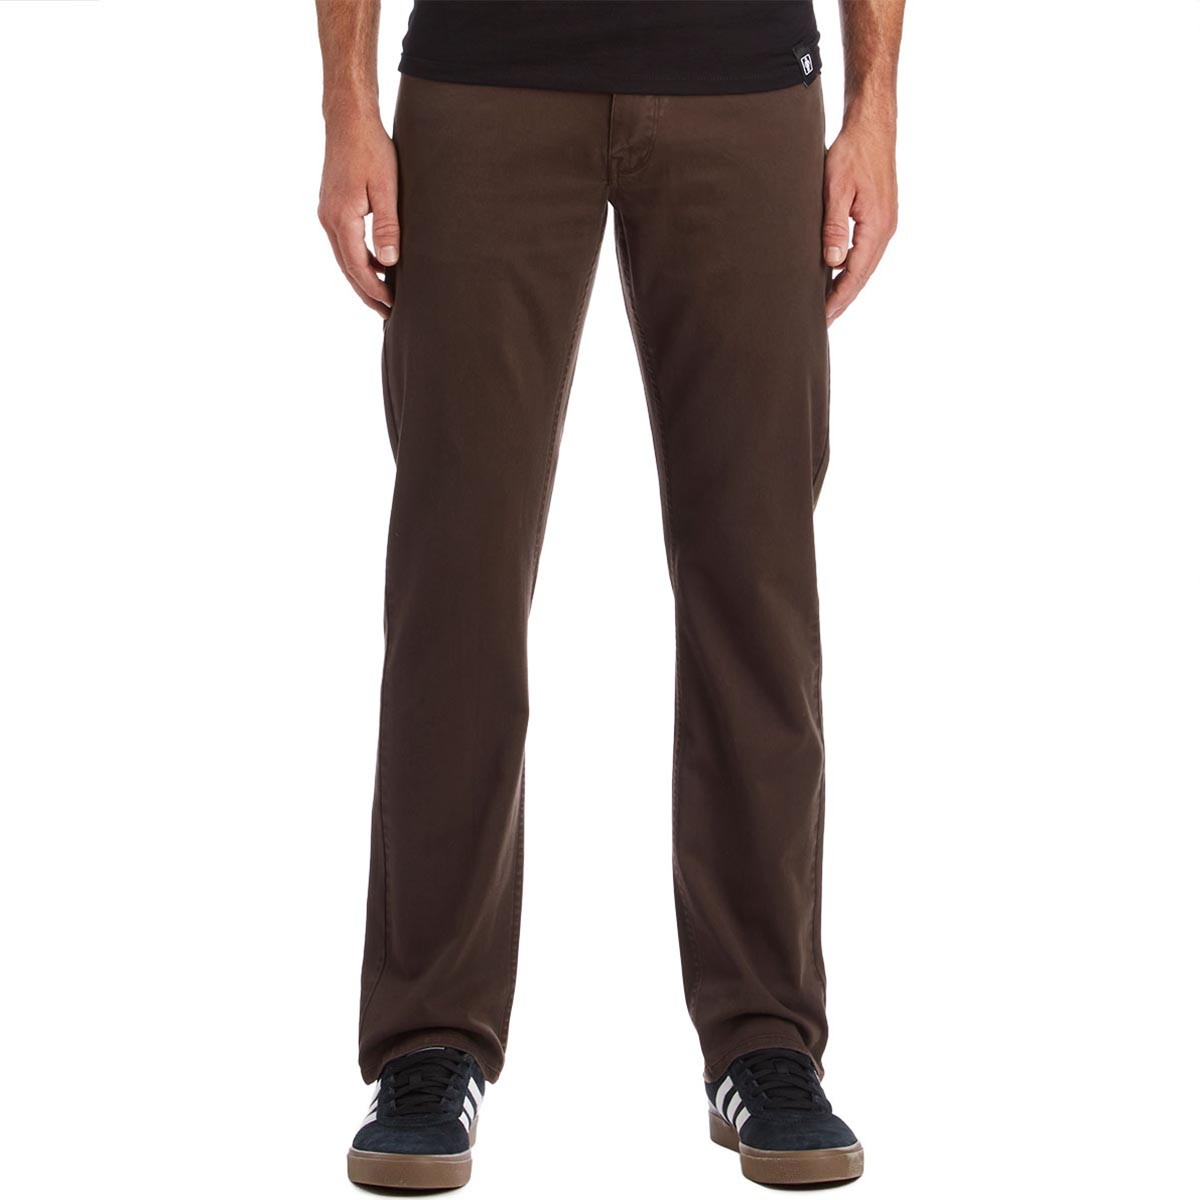 Matix Gripper Twill LT Pants - Chocolate